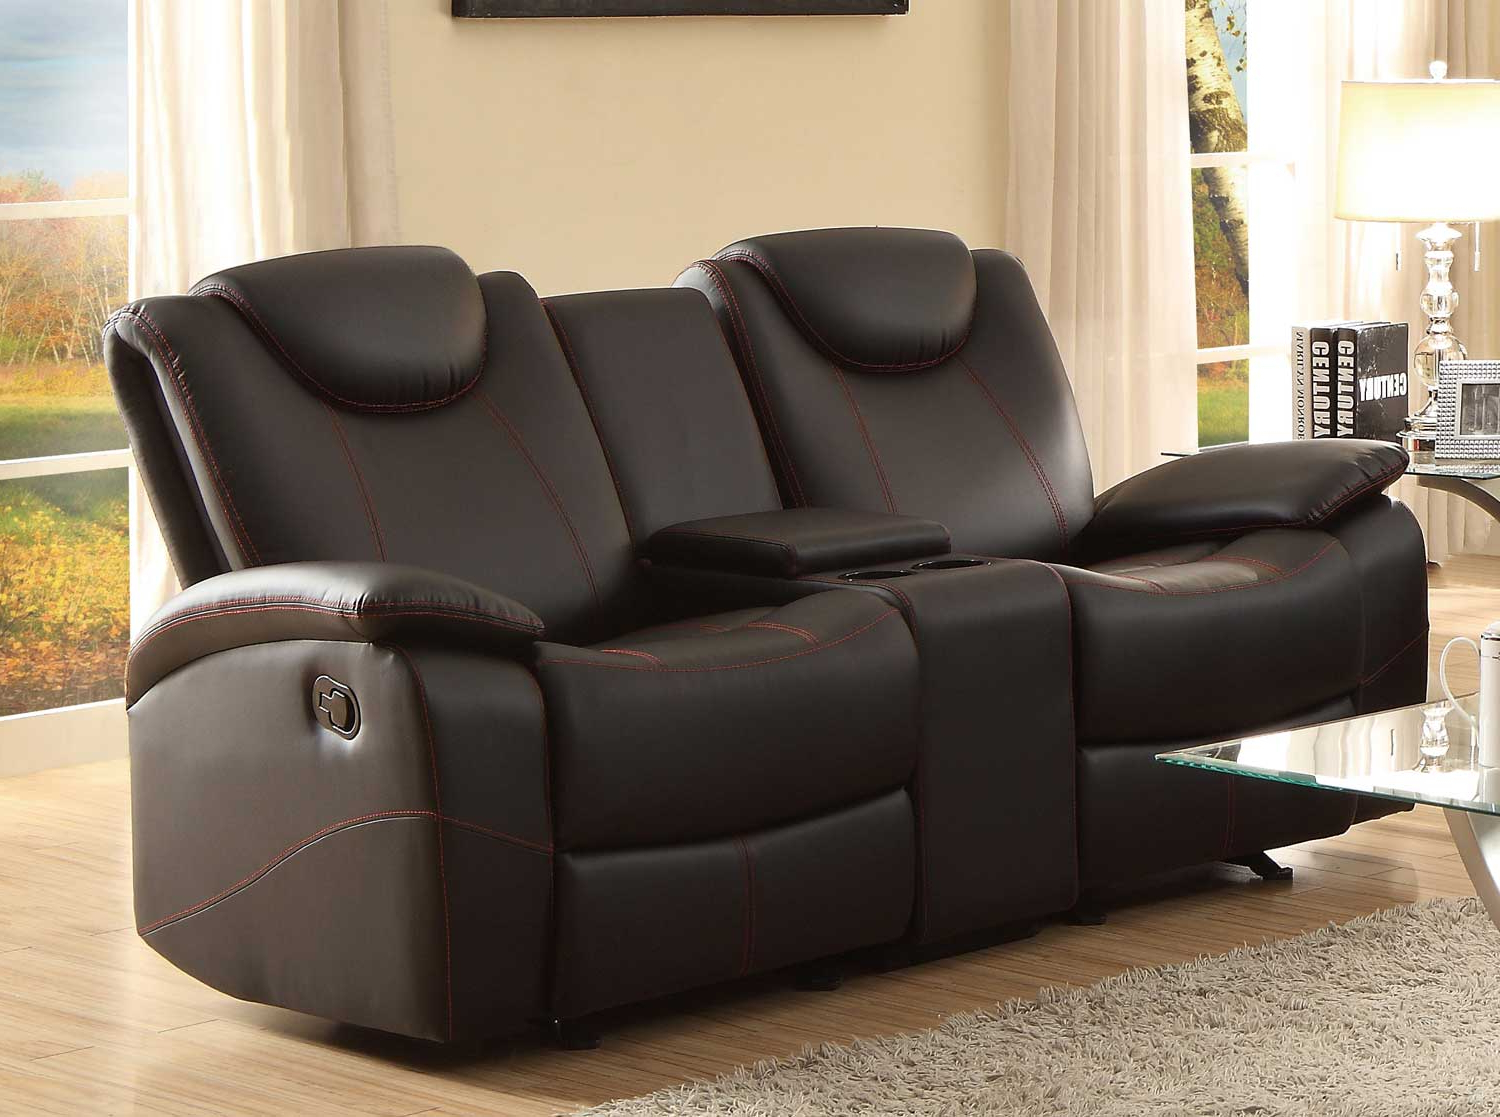 Homelegance Talbot Black Double Glider Reclining Loveseat Pertaining To Well Liked Double Glider Loveseats (View 13 of 30)